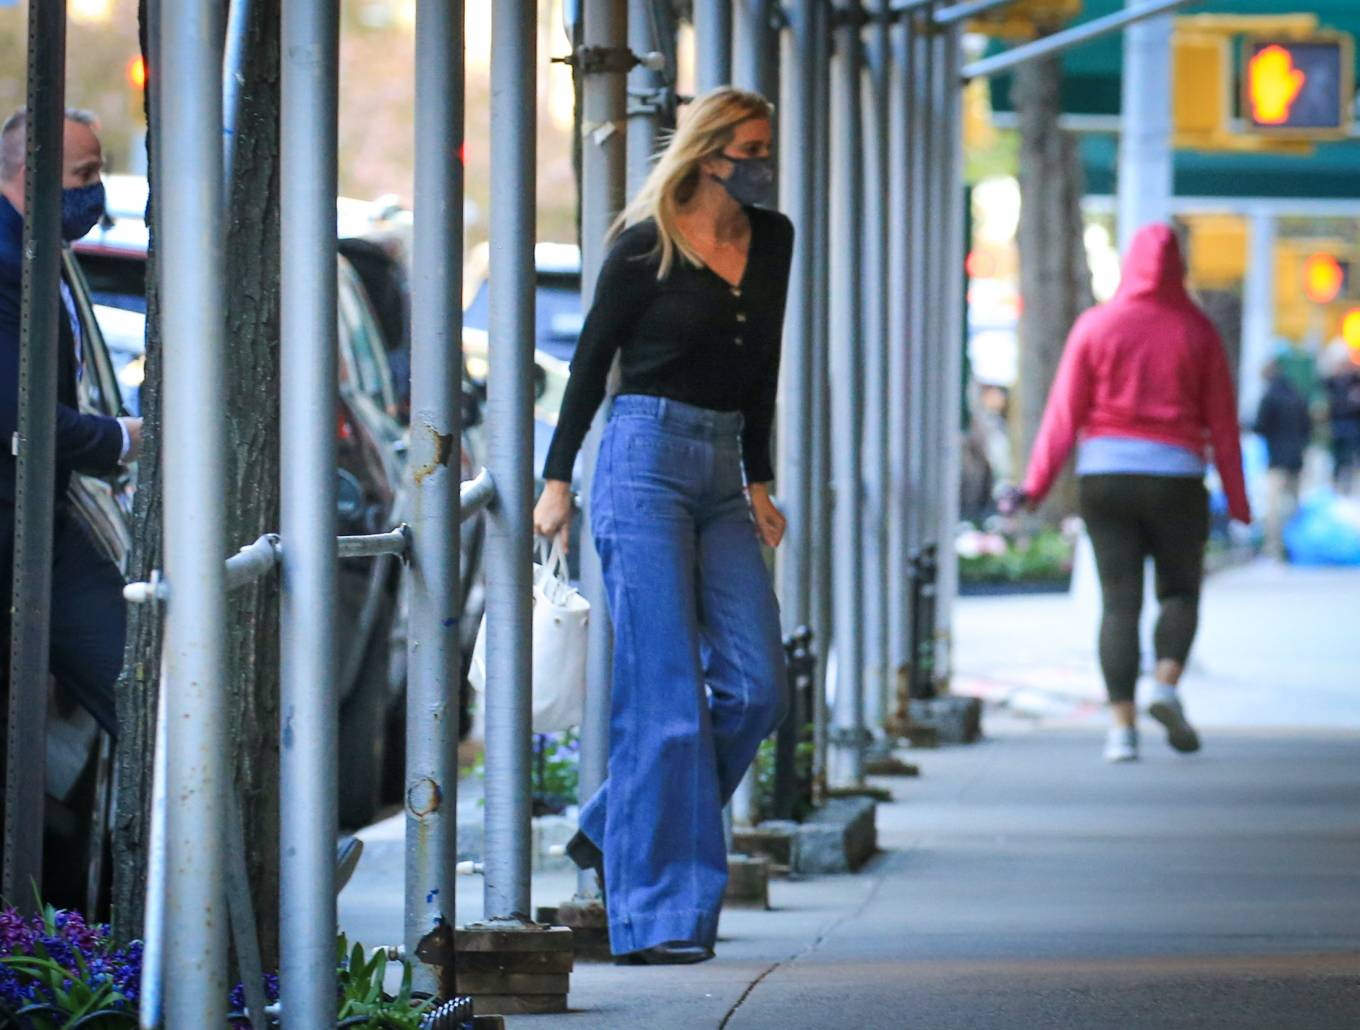 Ivanka Trump 2021 : Ivanka Trump – Seen in New York City whilst flanked by her Secret Service detail-02